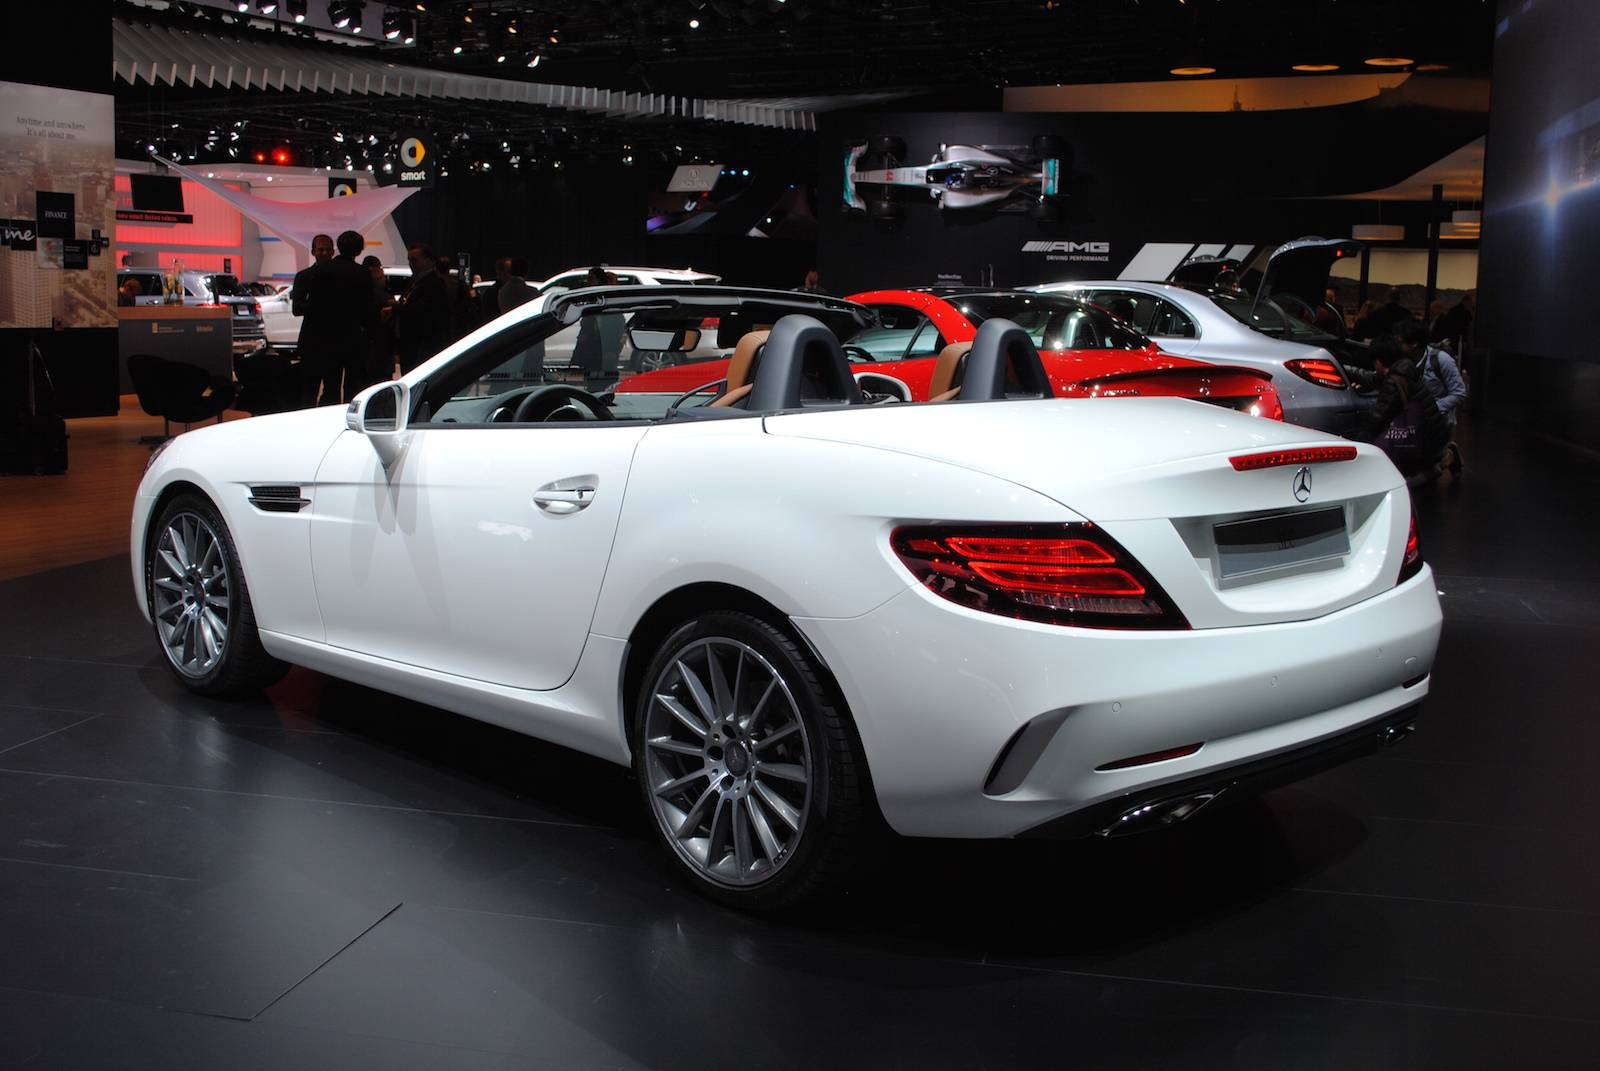 Mercedes benz drops the k and showcases the new slc at for Slc mercedes benz